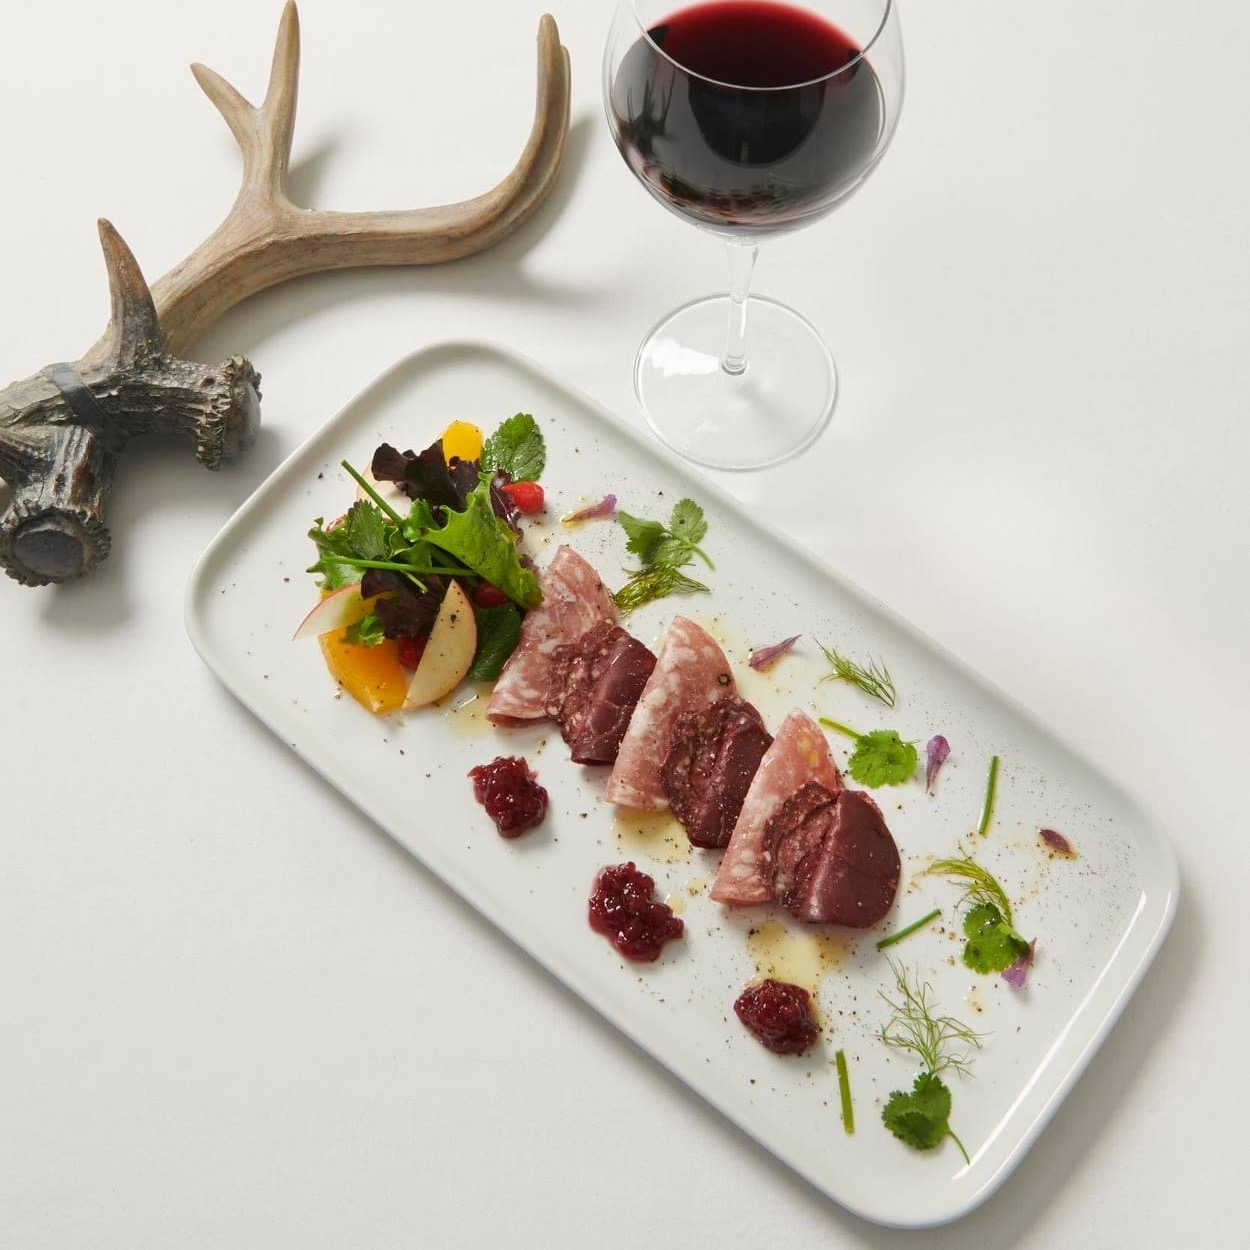 GOOD HIGHLAND FOOD VENISON CHARCUTERIE